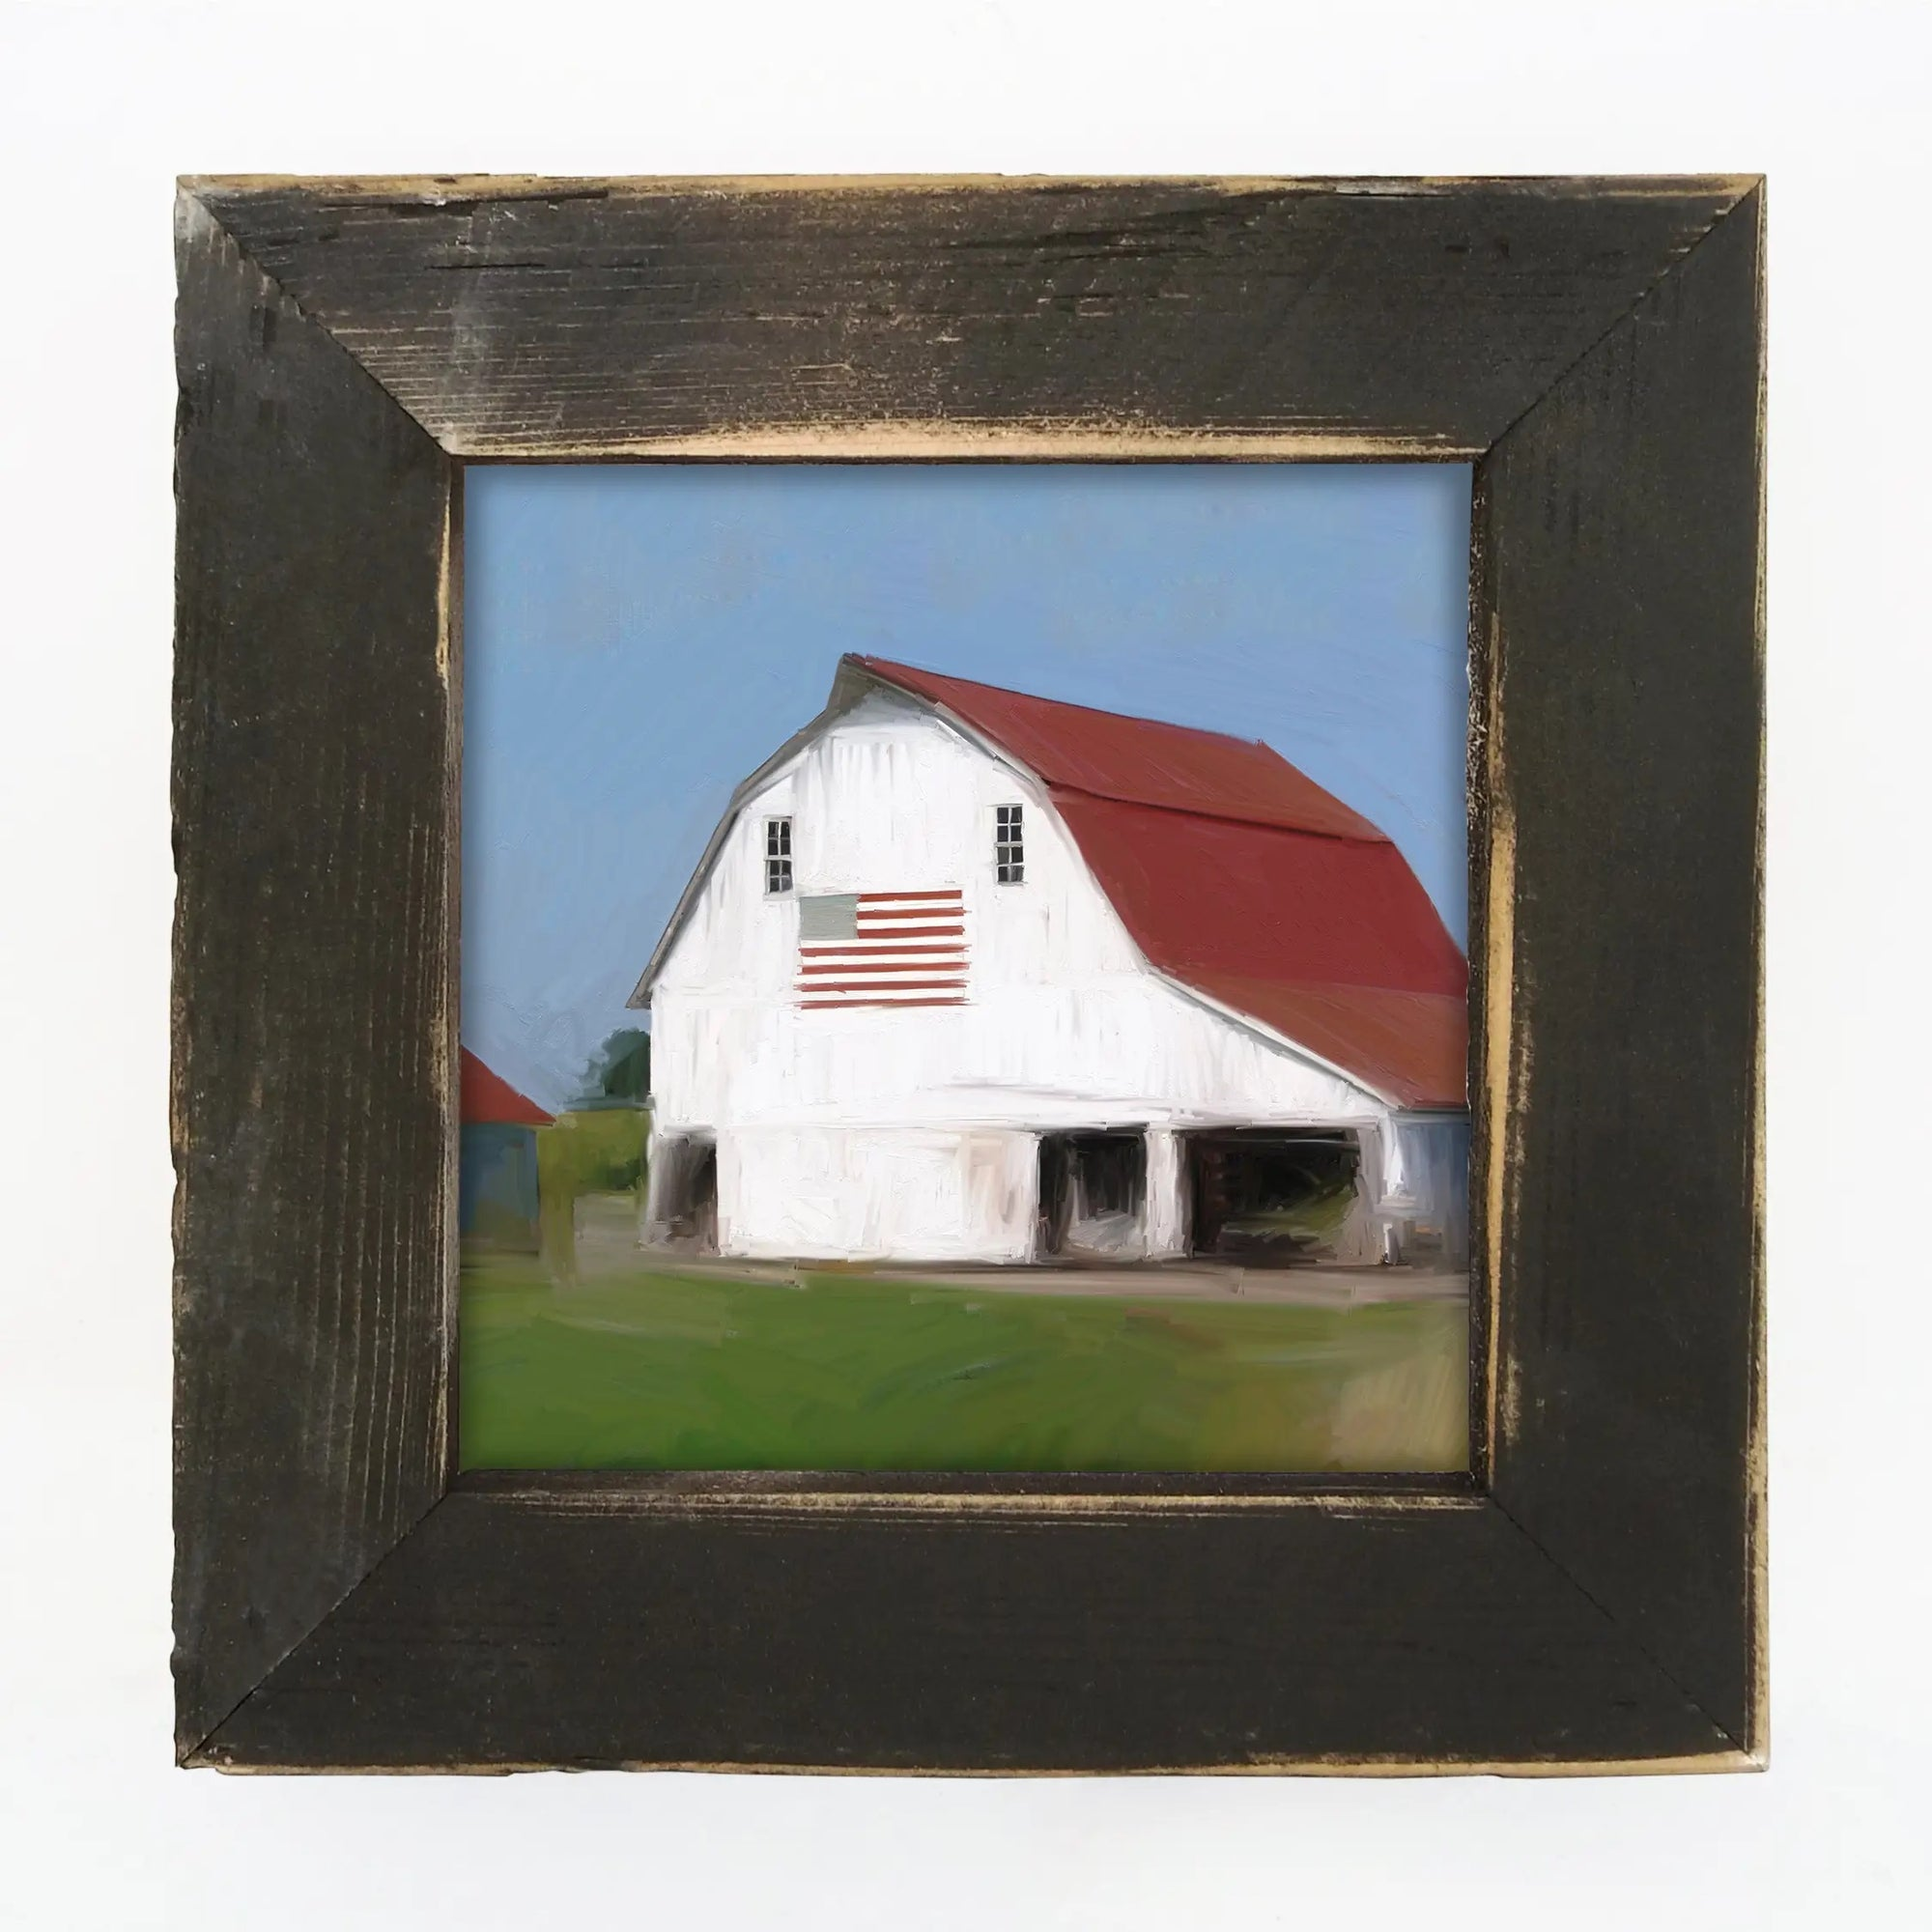 "American farmhouse style is made easy with this patriotic barn. This White Barn with Flag Wall Art with Barnwood Frame adds a cheerful and bright touch to any room. The aged black frame is made of barnwood reclaimed from centuries-old wood from upstate NY. The artwork is printed on high-quality matte paper with archival inks and mounted permanently to 1/8"" hardboard which is mounted to the frame. Made in the USA . 8.5"" x 8.5"""